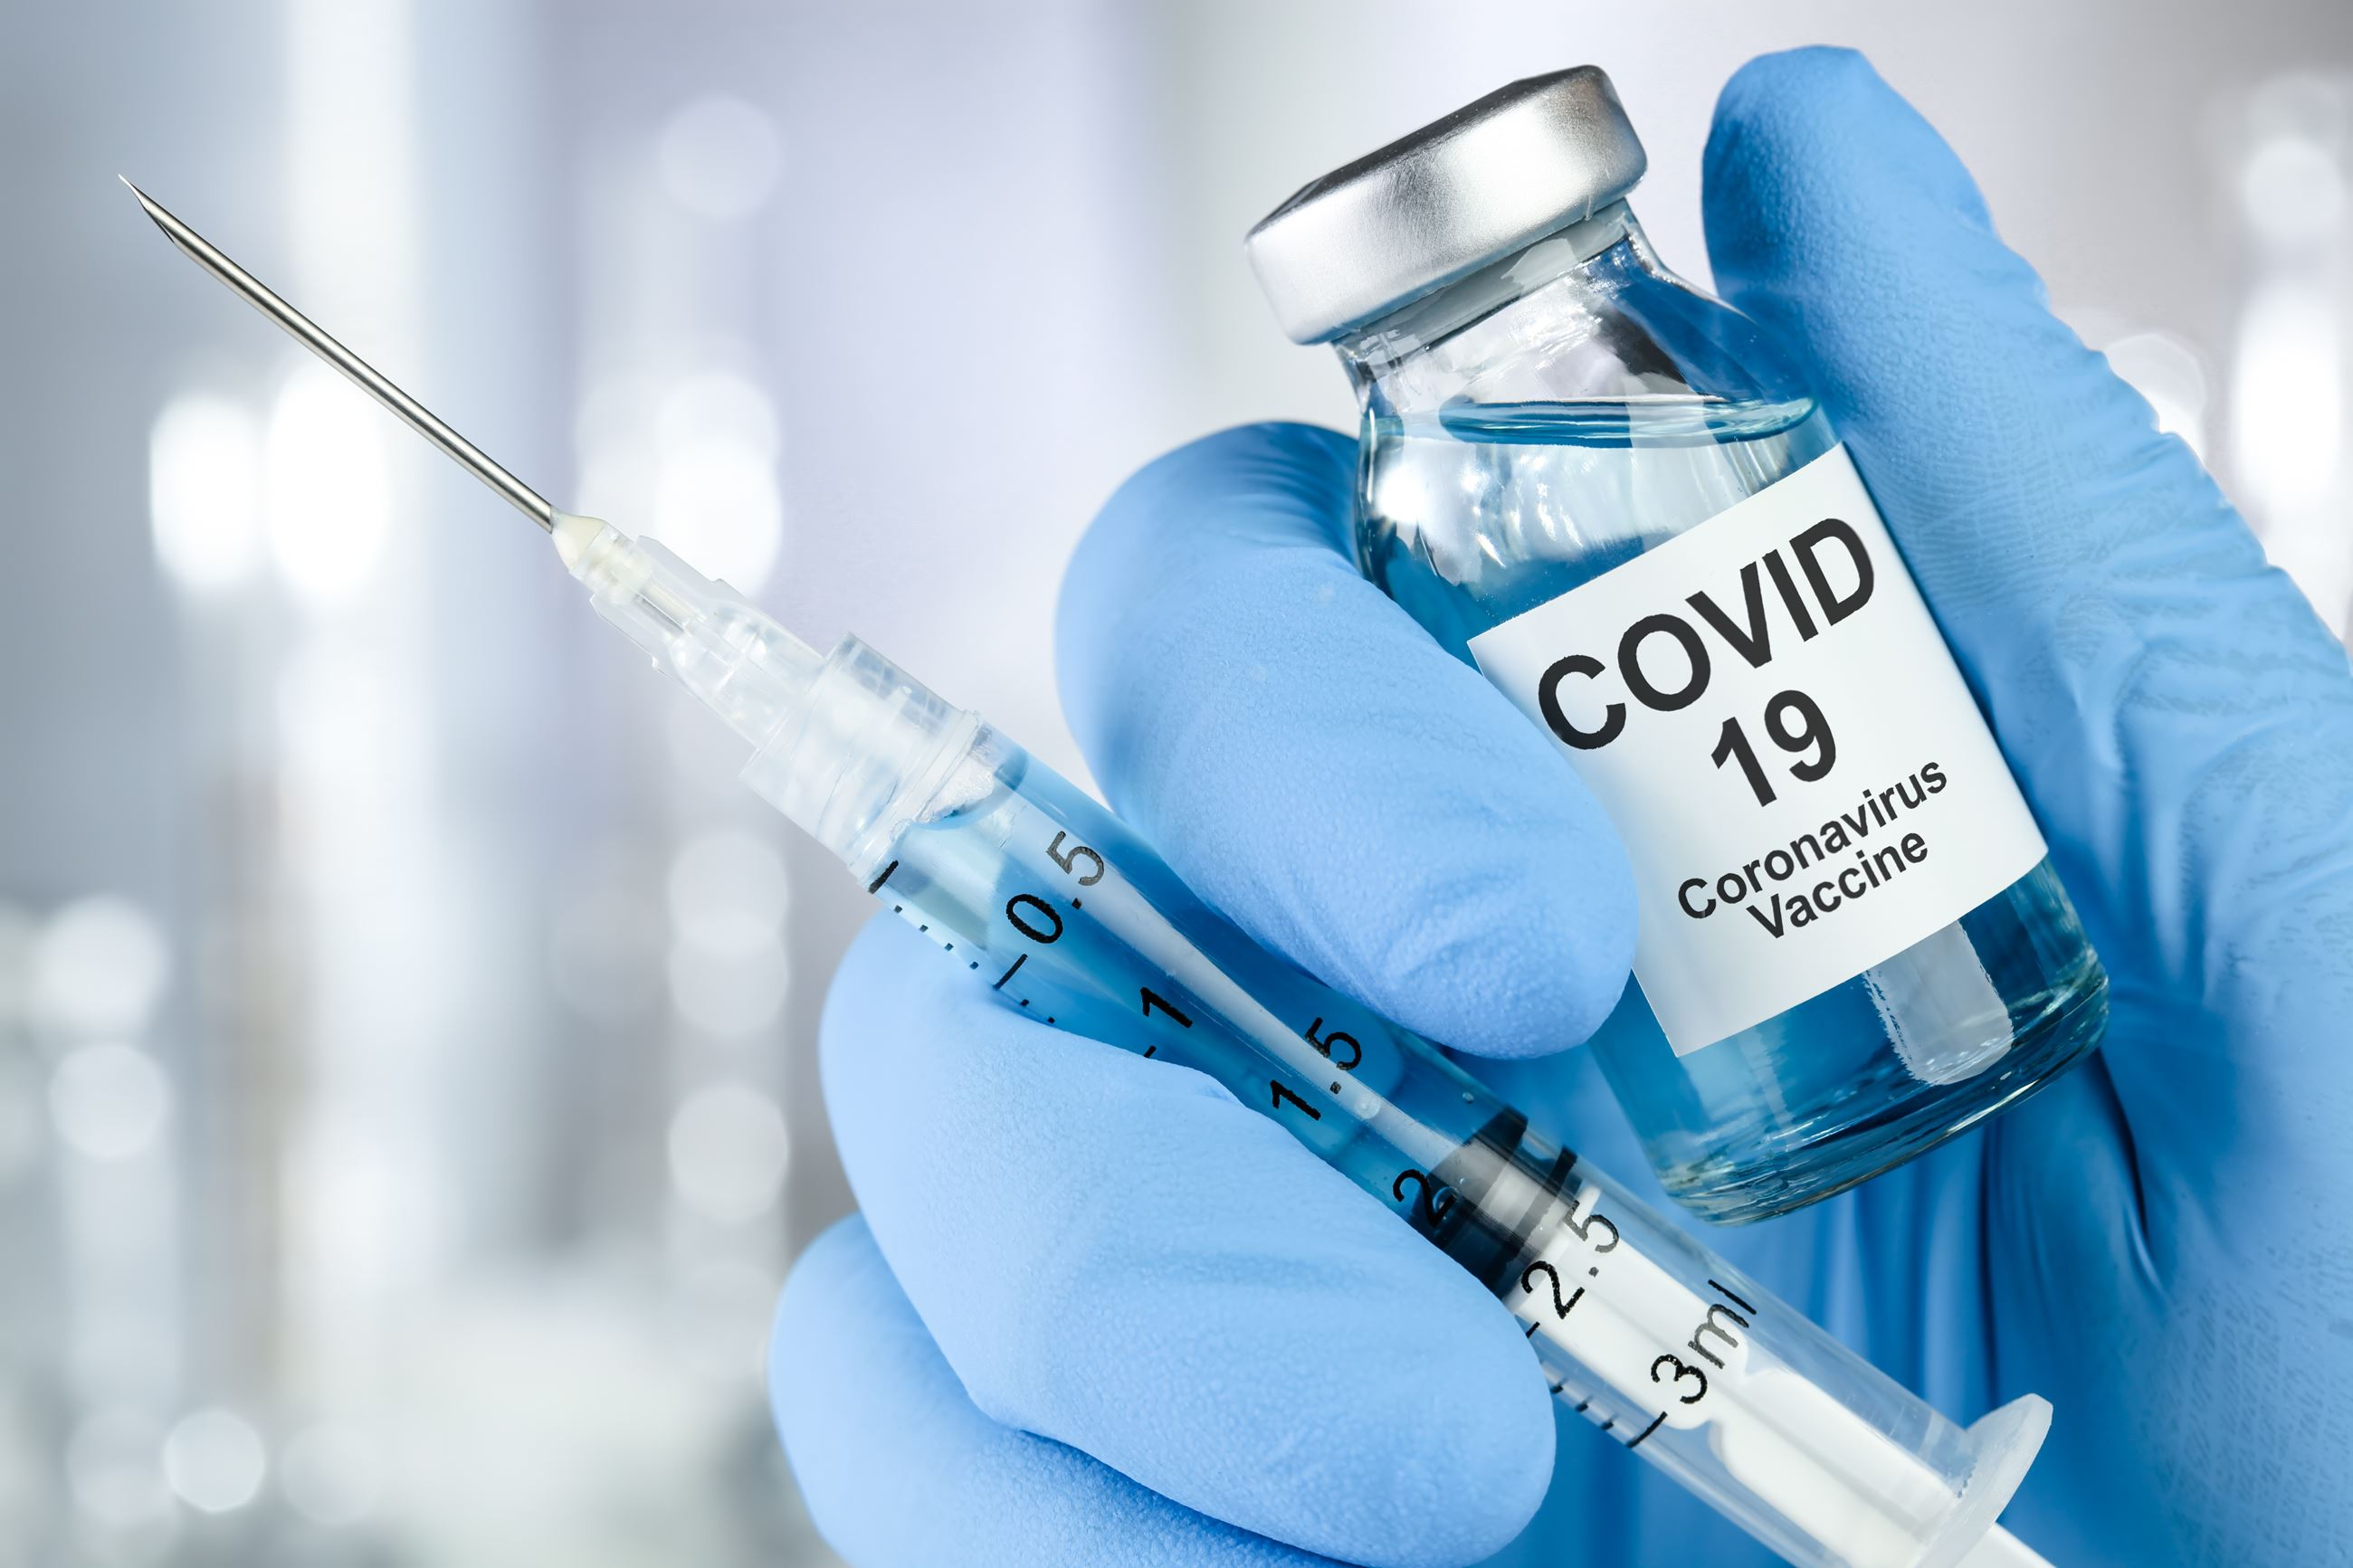 covid vaccine vial and needle